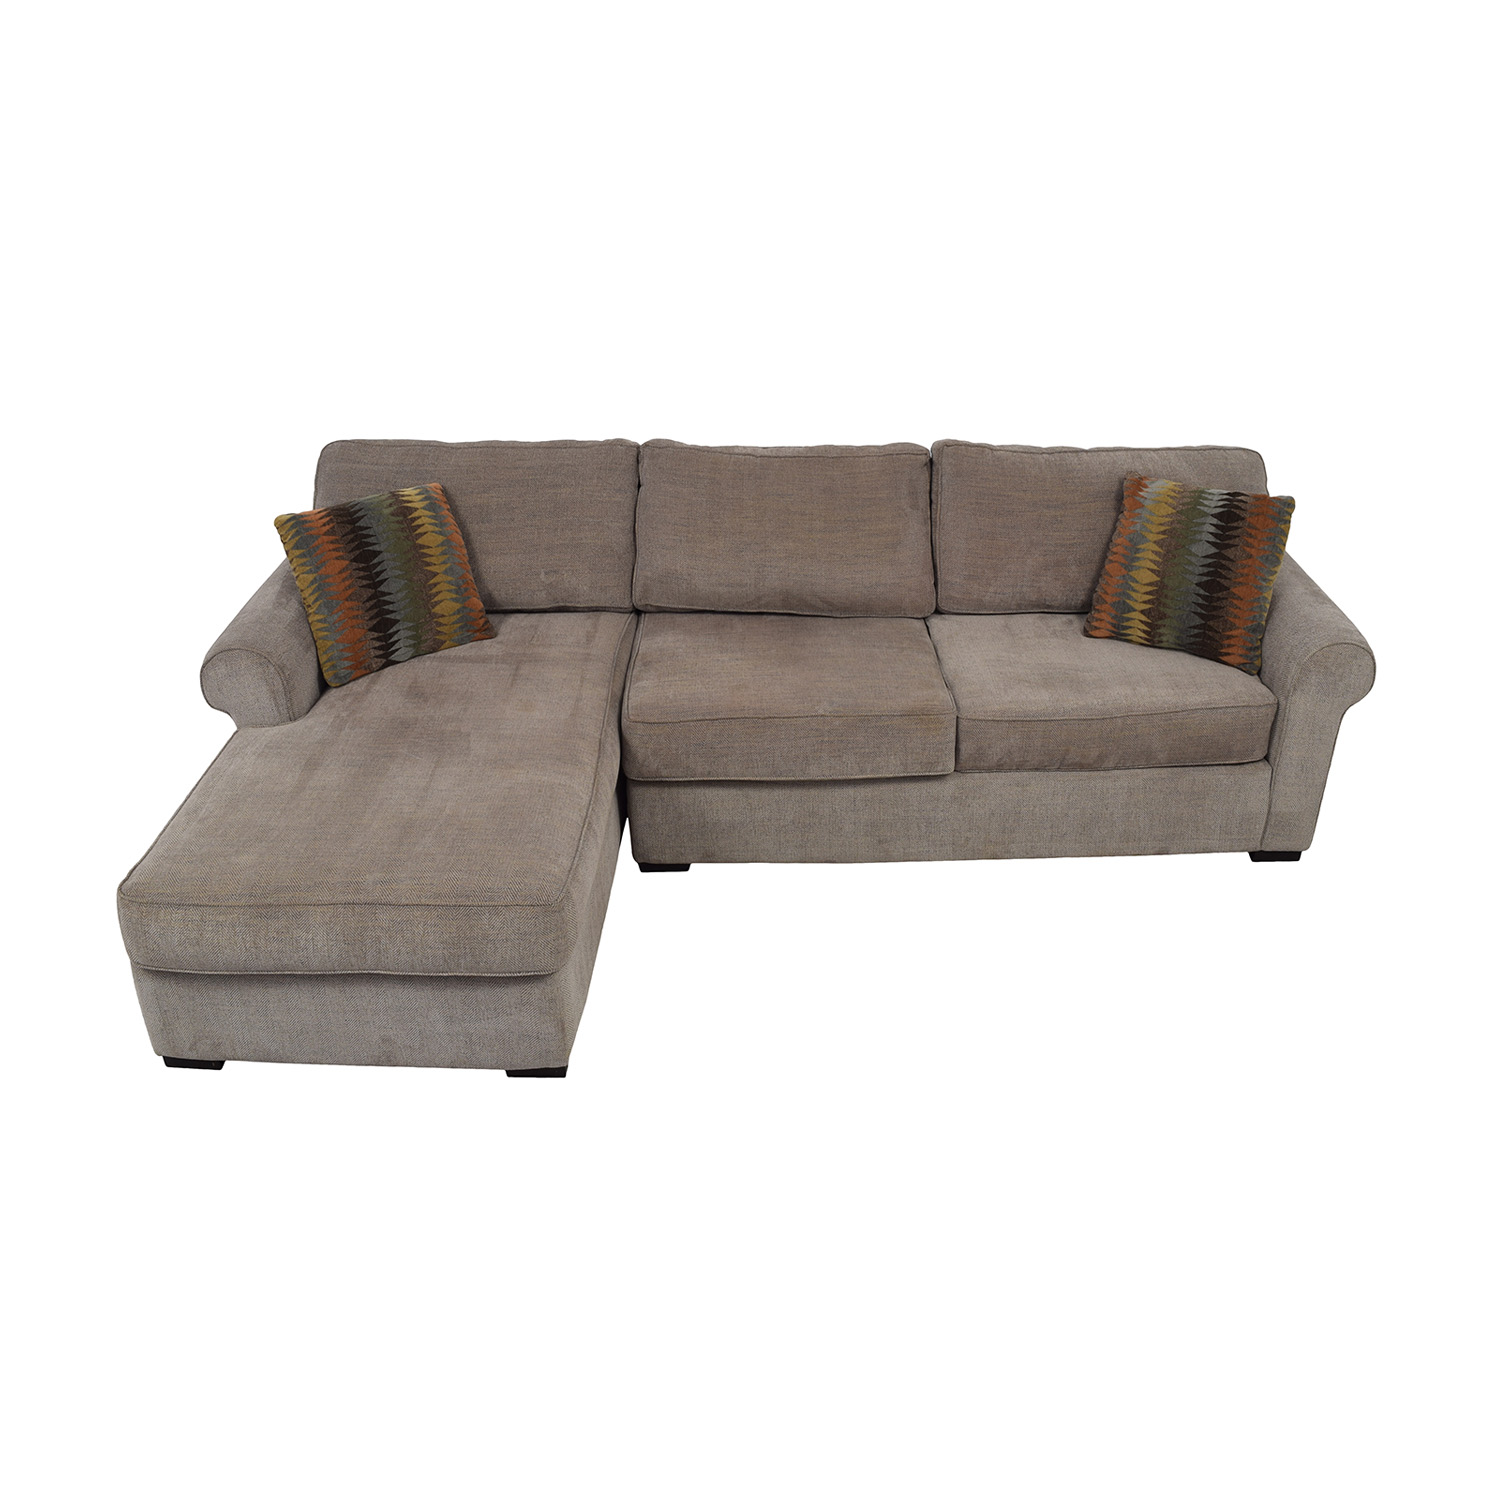 Raymour & Flanigan Raymour & Flanigan Brown Tweed Chaise Sectional second hand